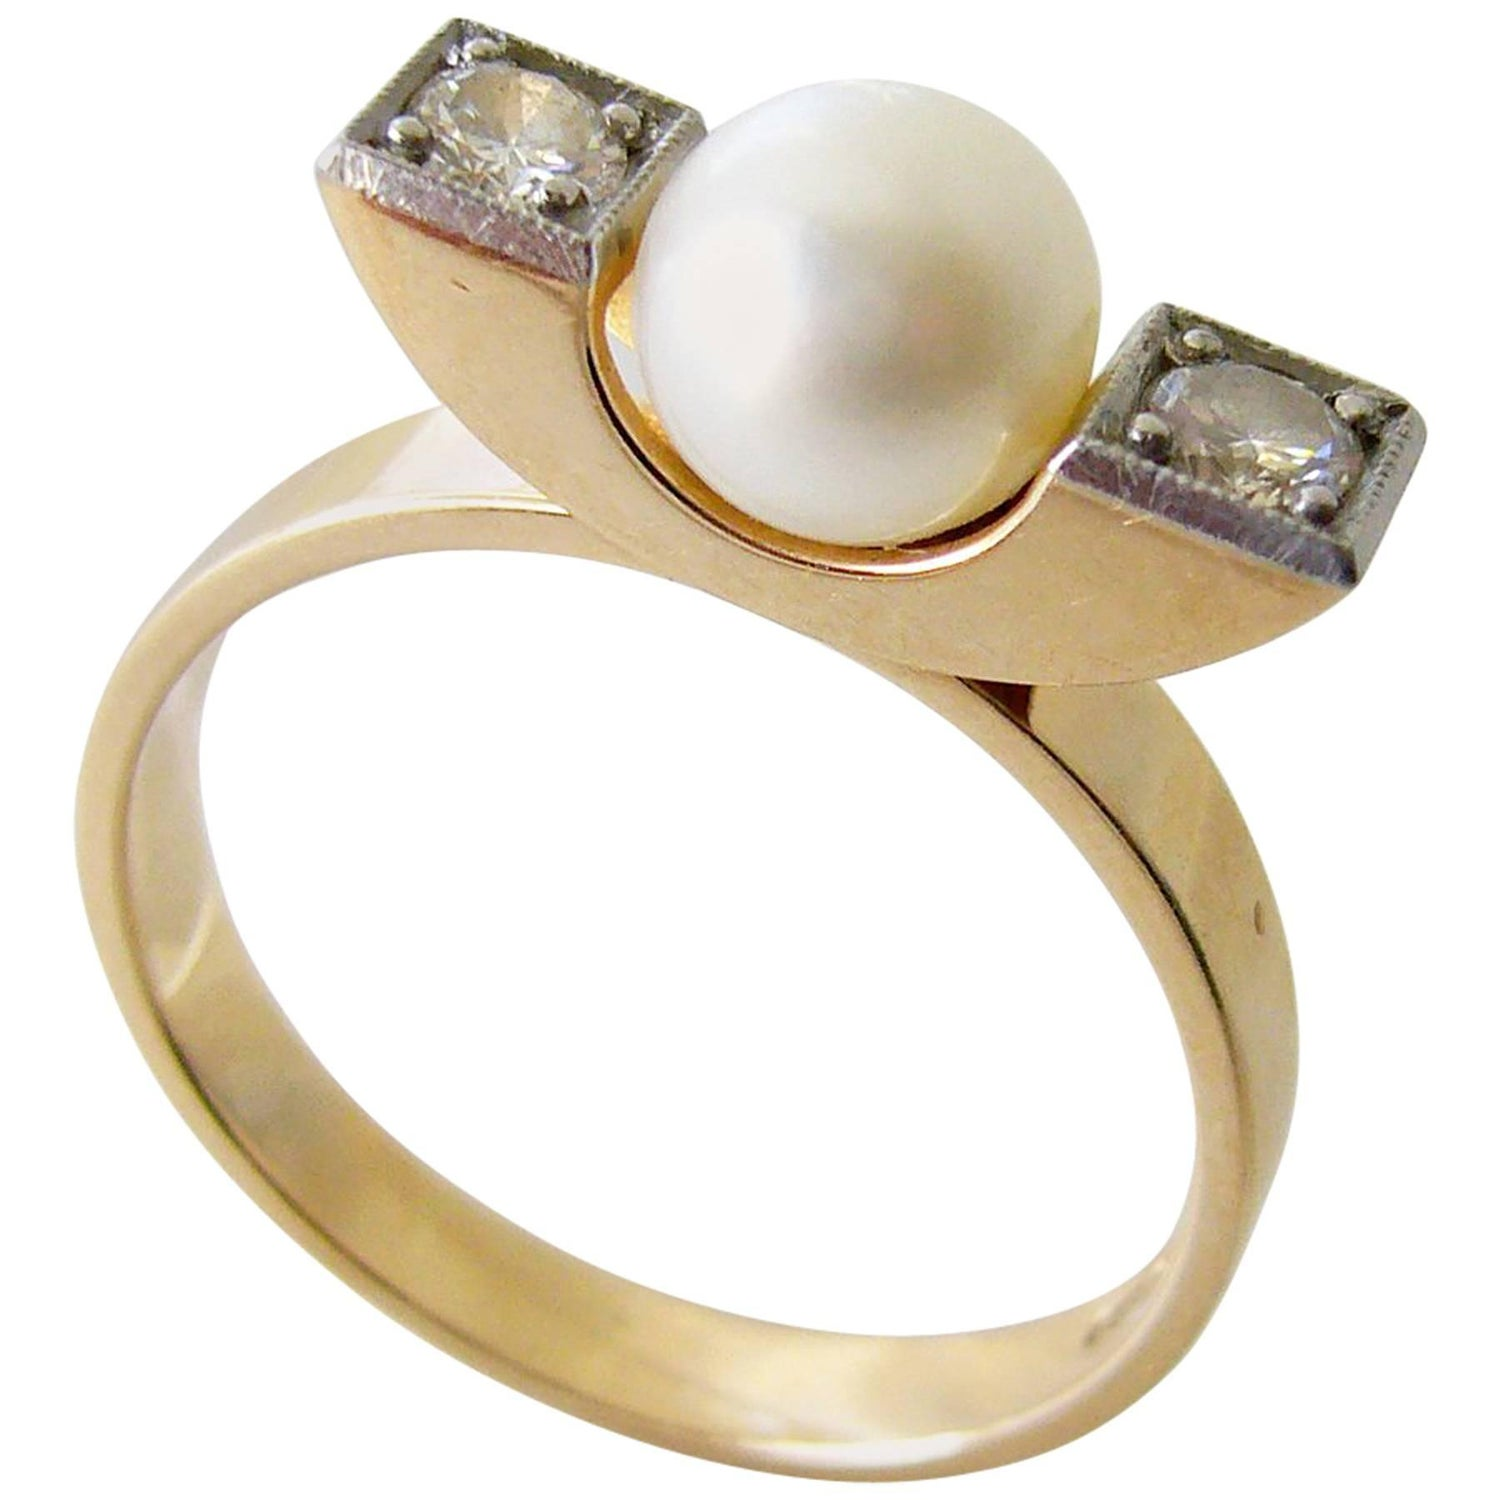 dress modernist products engagement imaginative fetheray styled rings aventurine ring